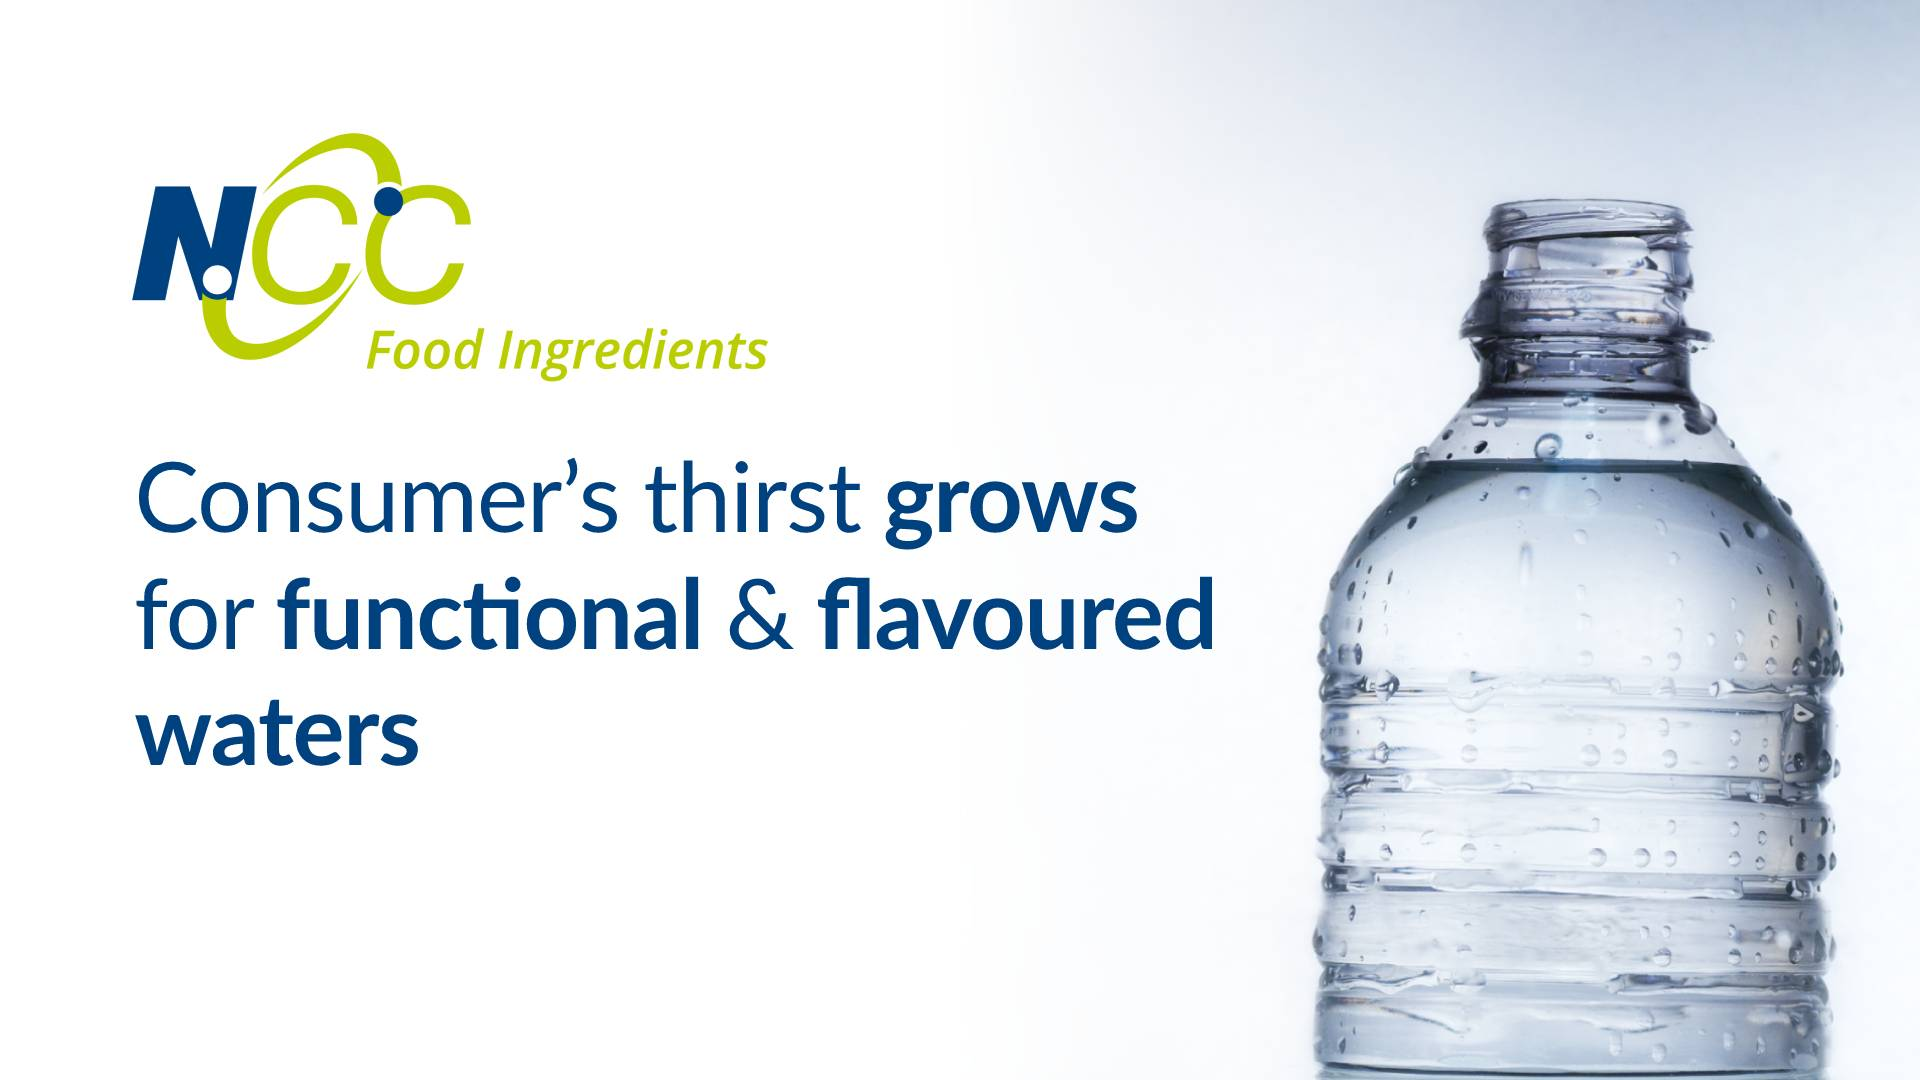 Consumer's thirst grows for functional and flavoured waters